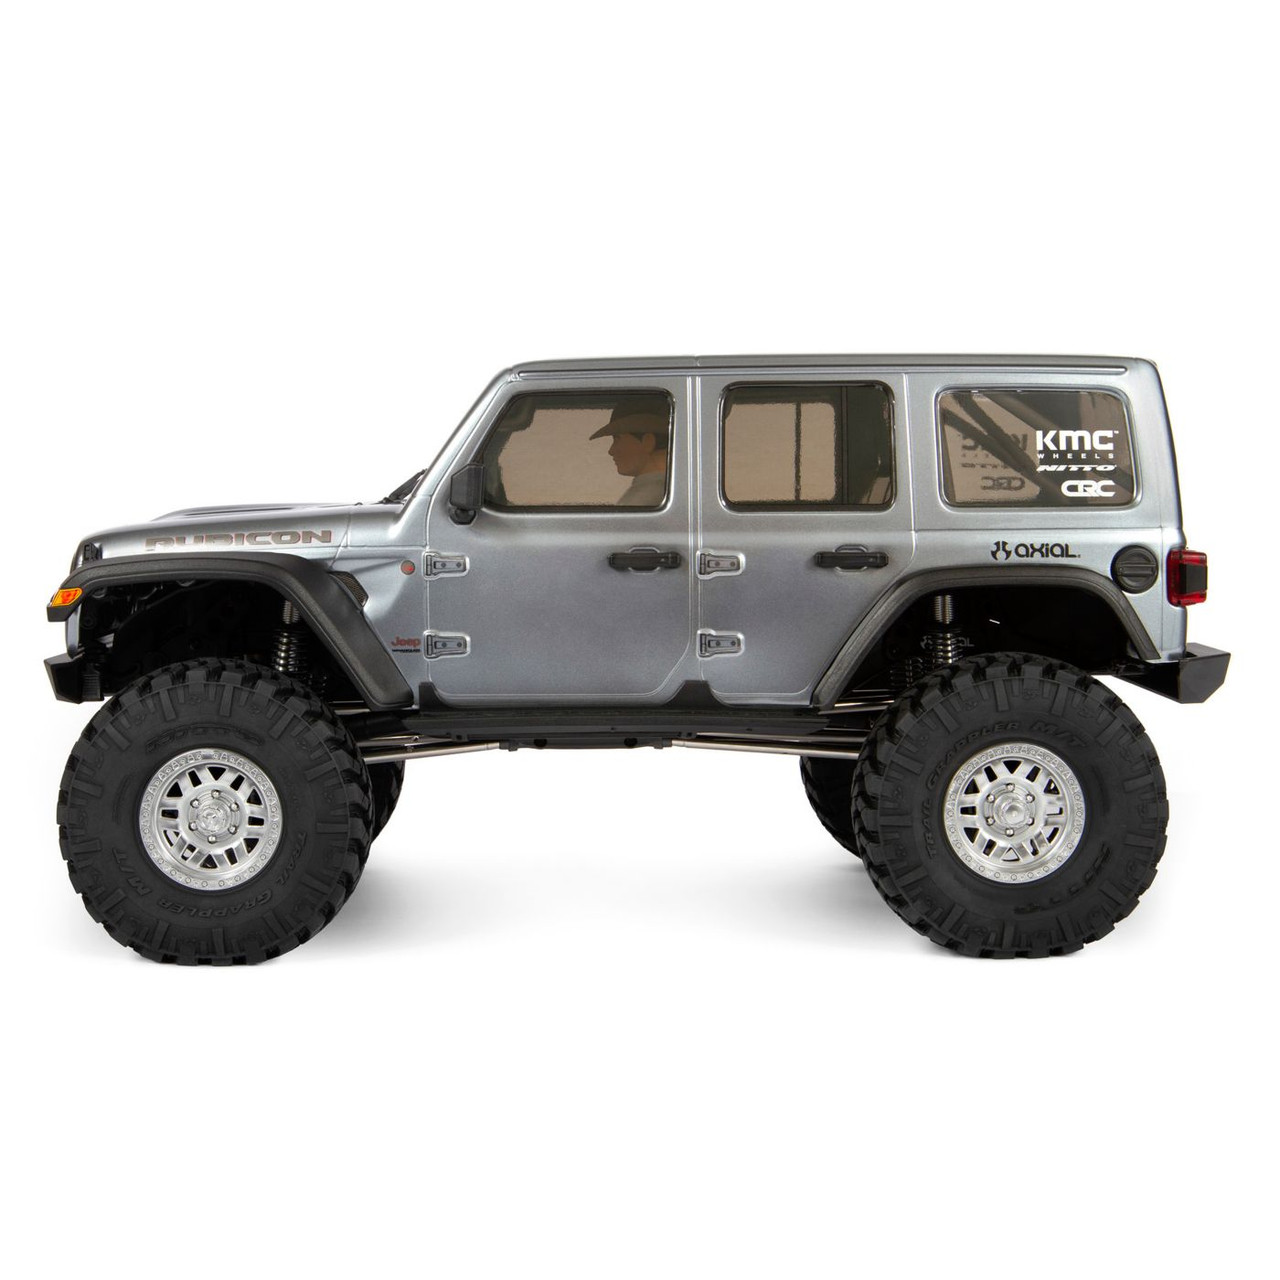 Axial SCX10 III Jeep Wrangler JL 1/10 Scale Rock Crawler Kit w ...